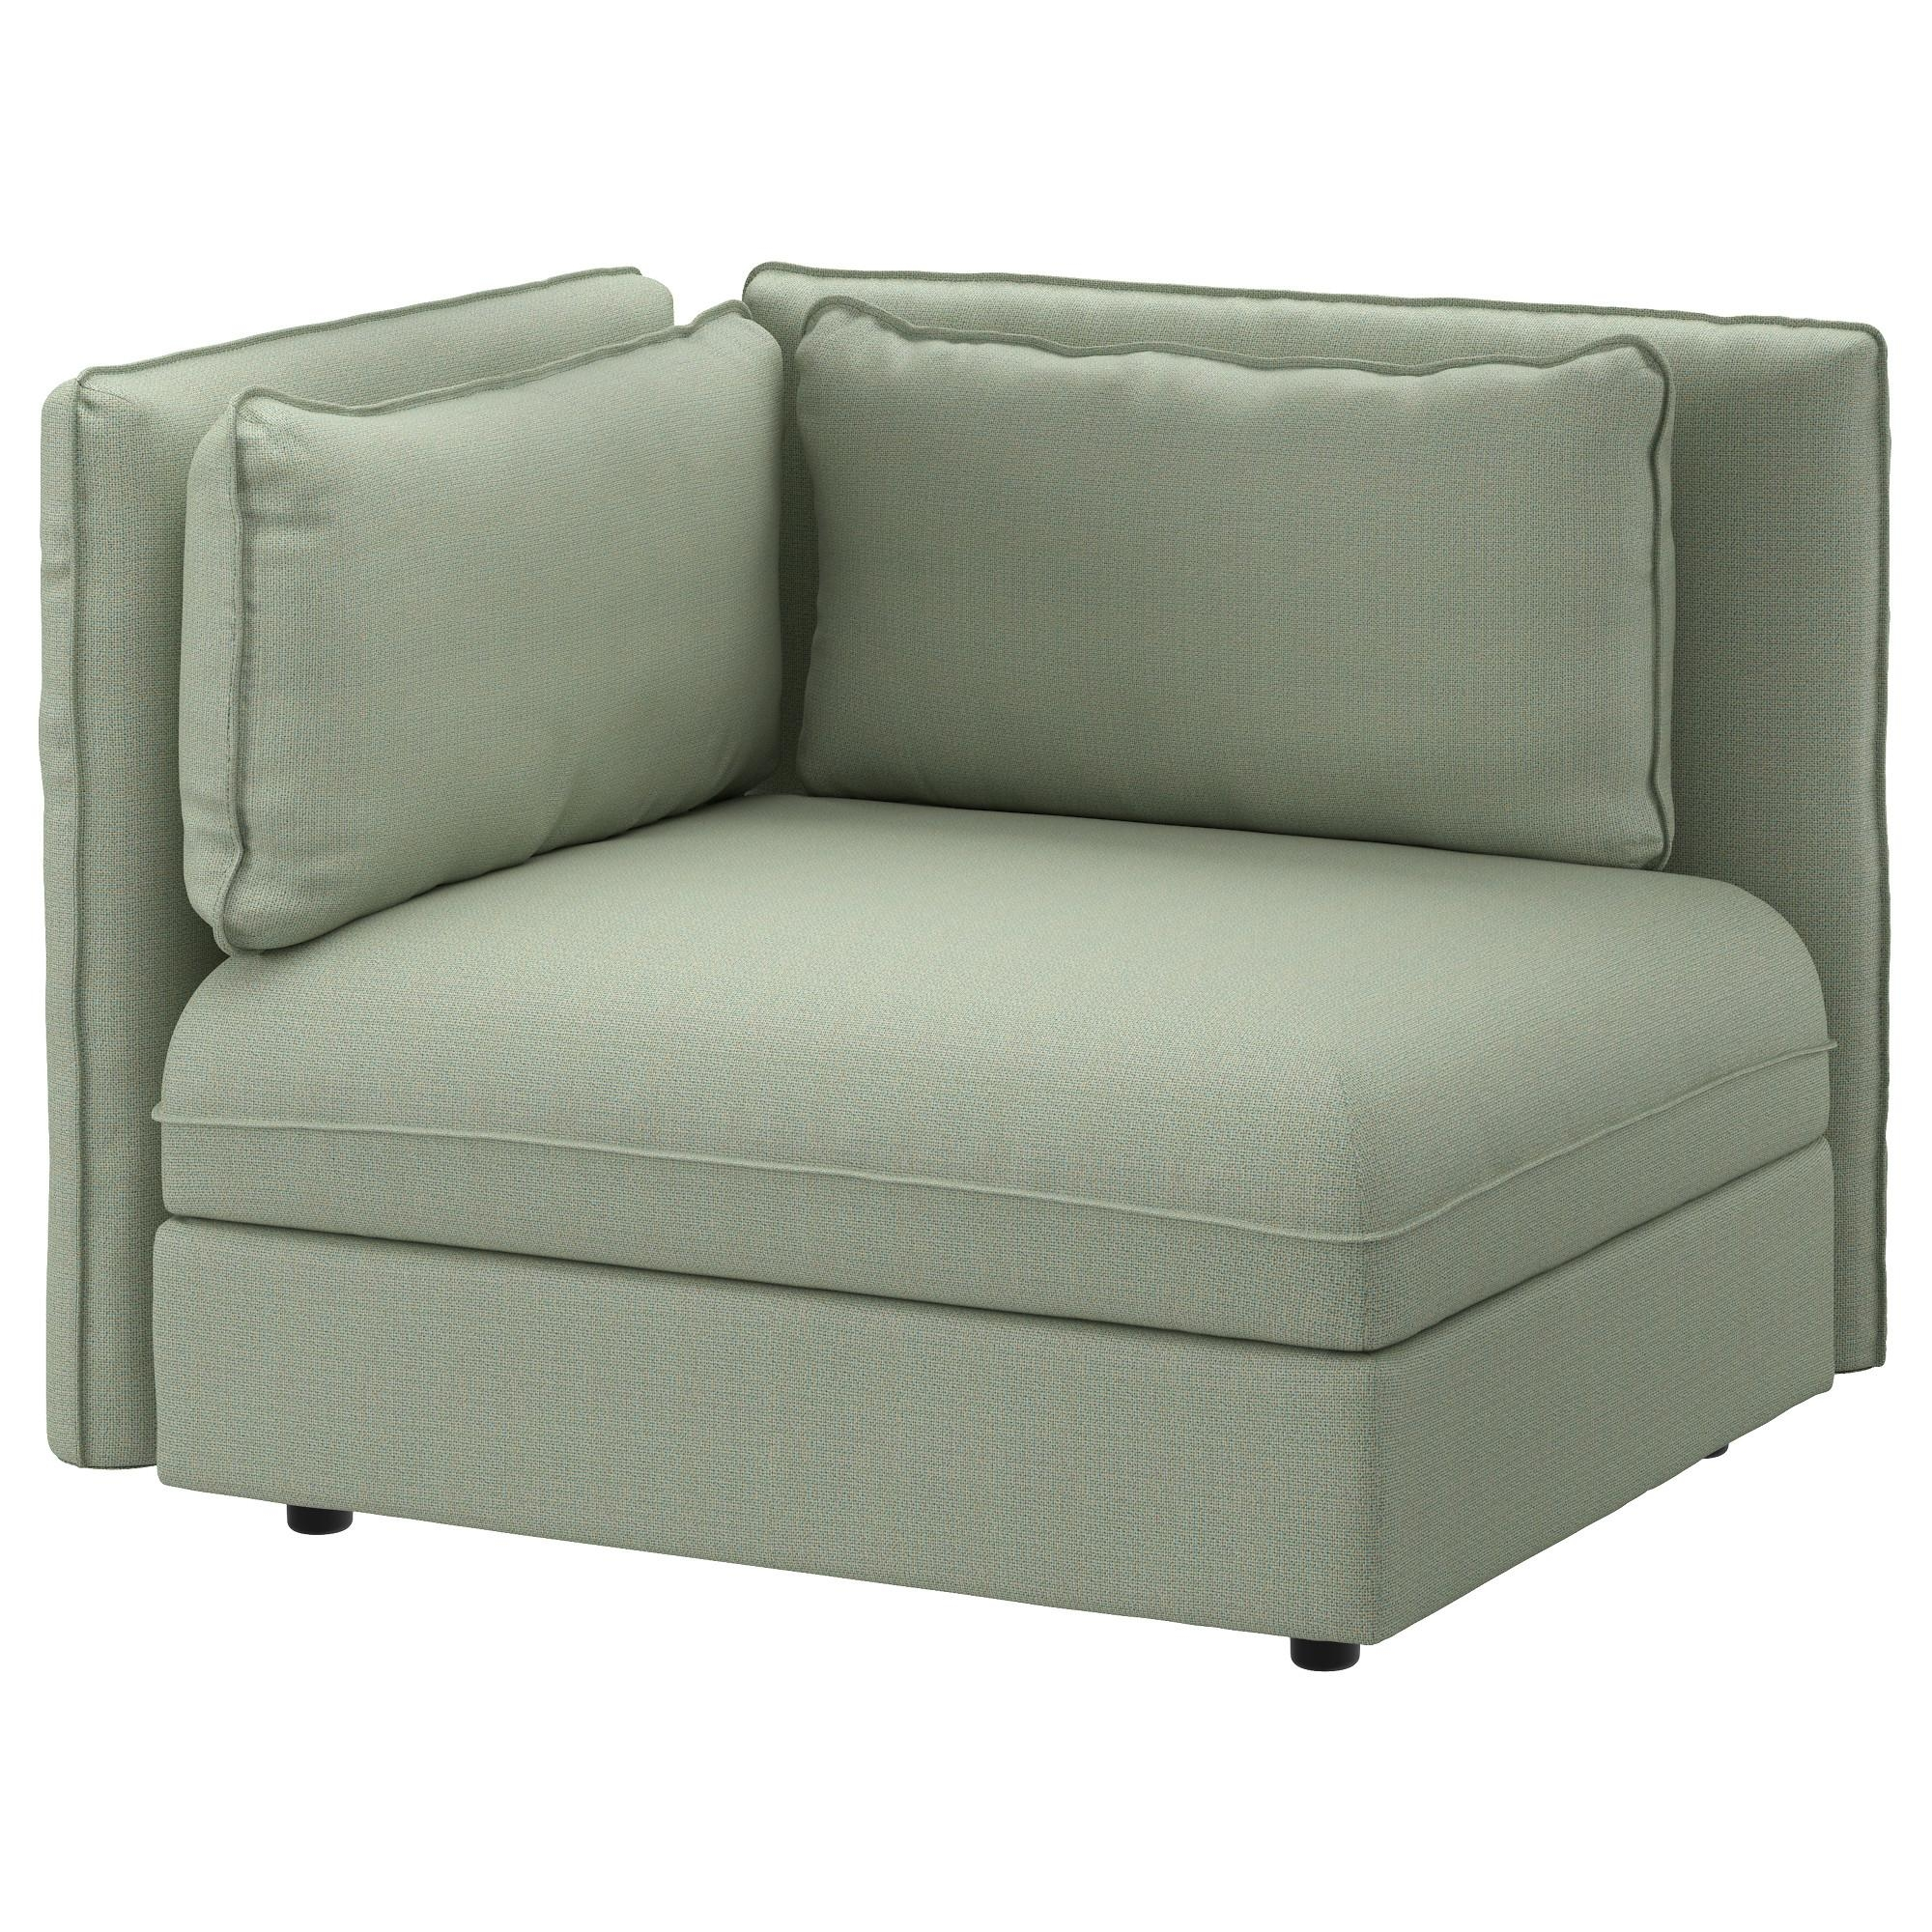 Sectional Sofas & Couches – Ikea In Ikea Sectional Sleeper Sofa (View 17 of 20)